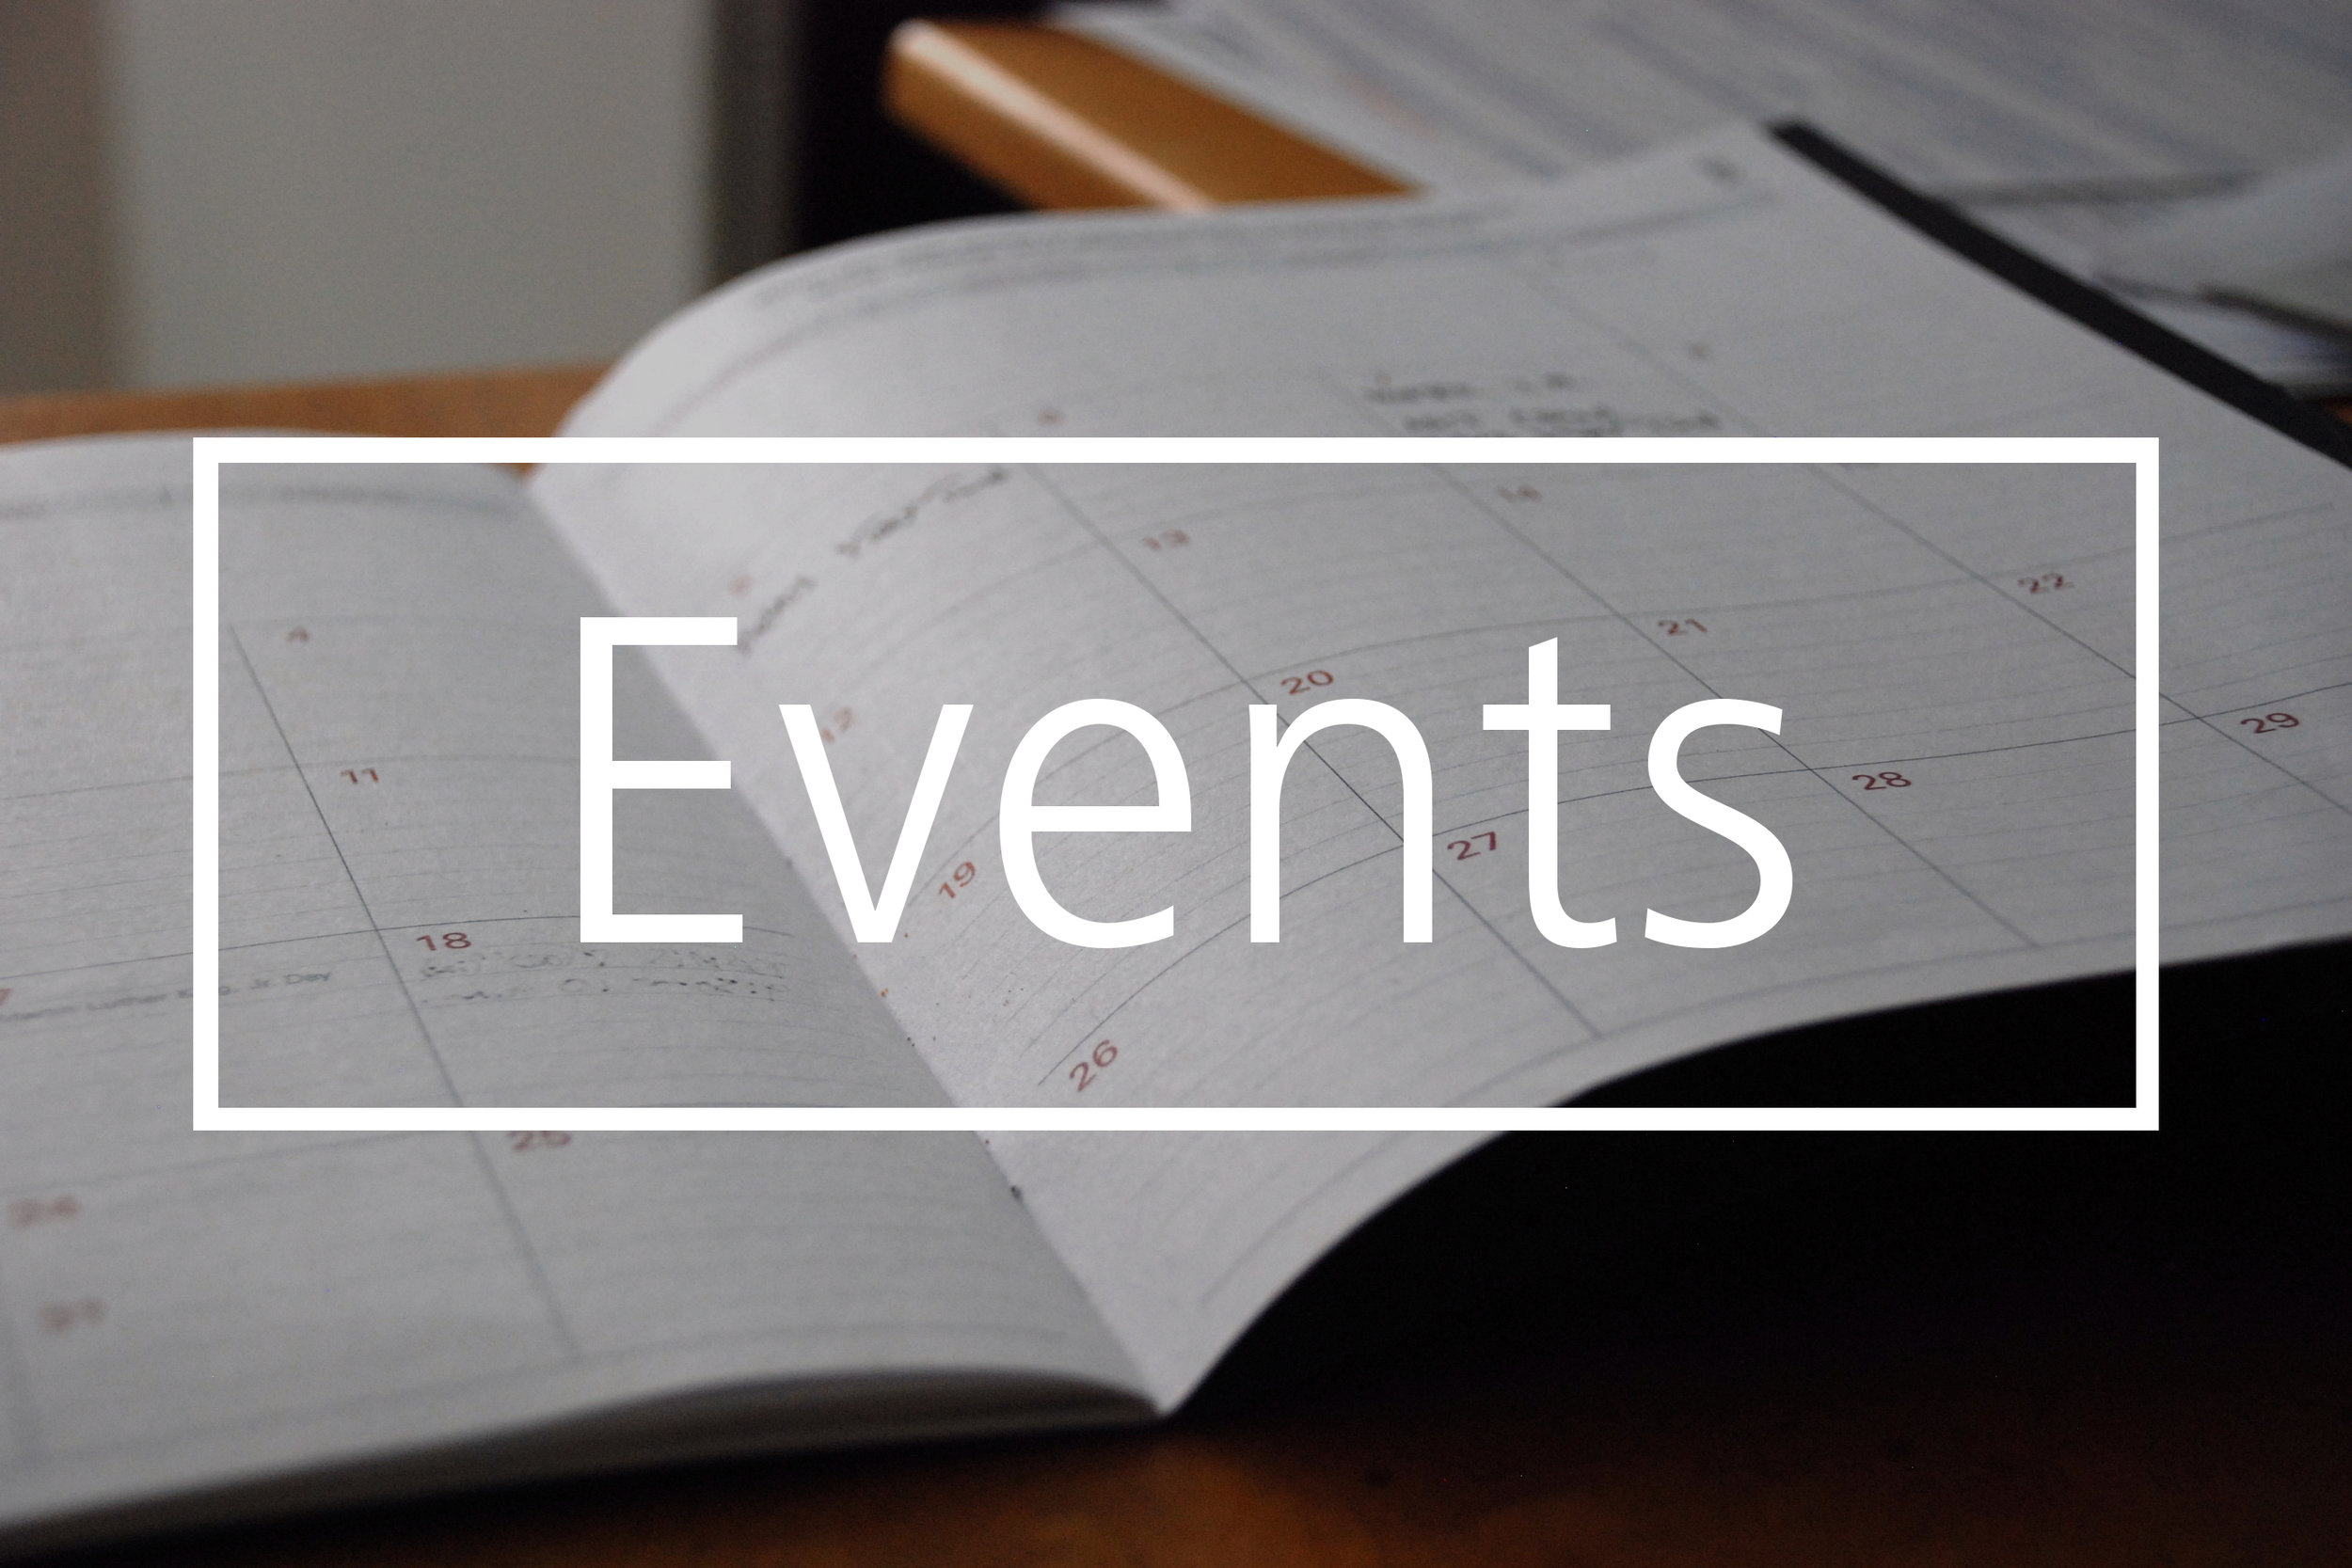 Events and calendar